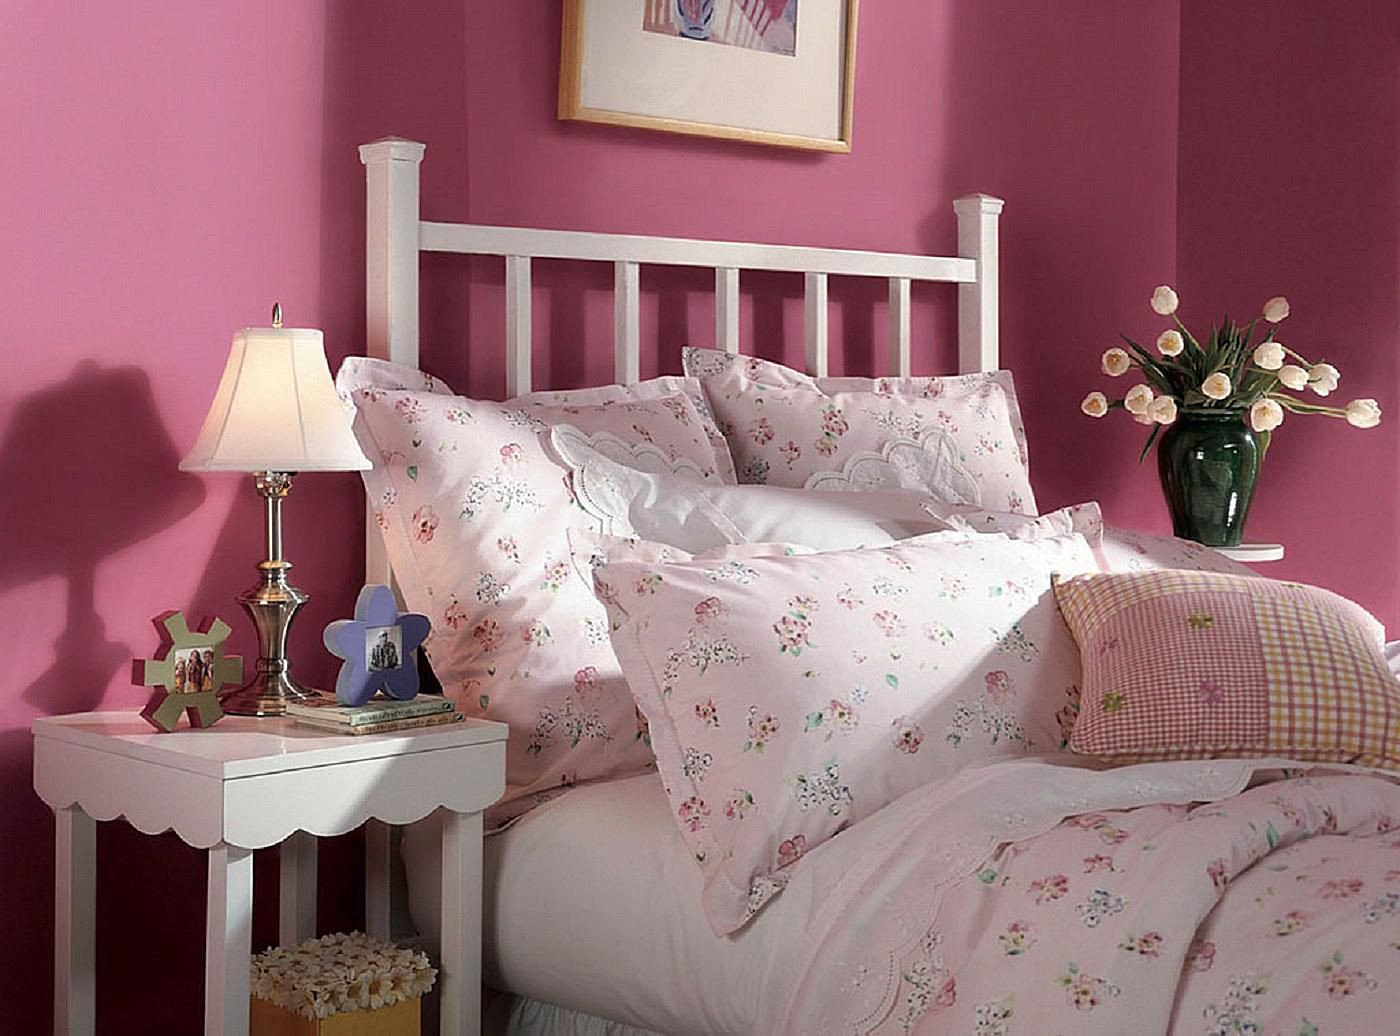 Pink and Purple Room Decor New 10 Great Pink and Purple Paint Colors for the Bedroom